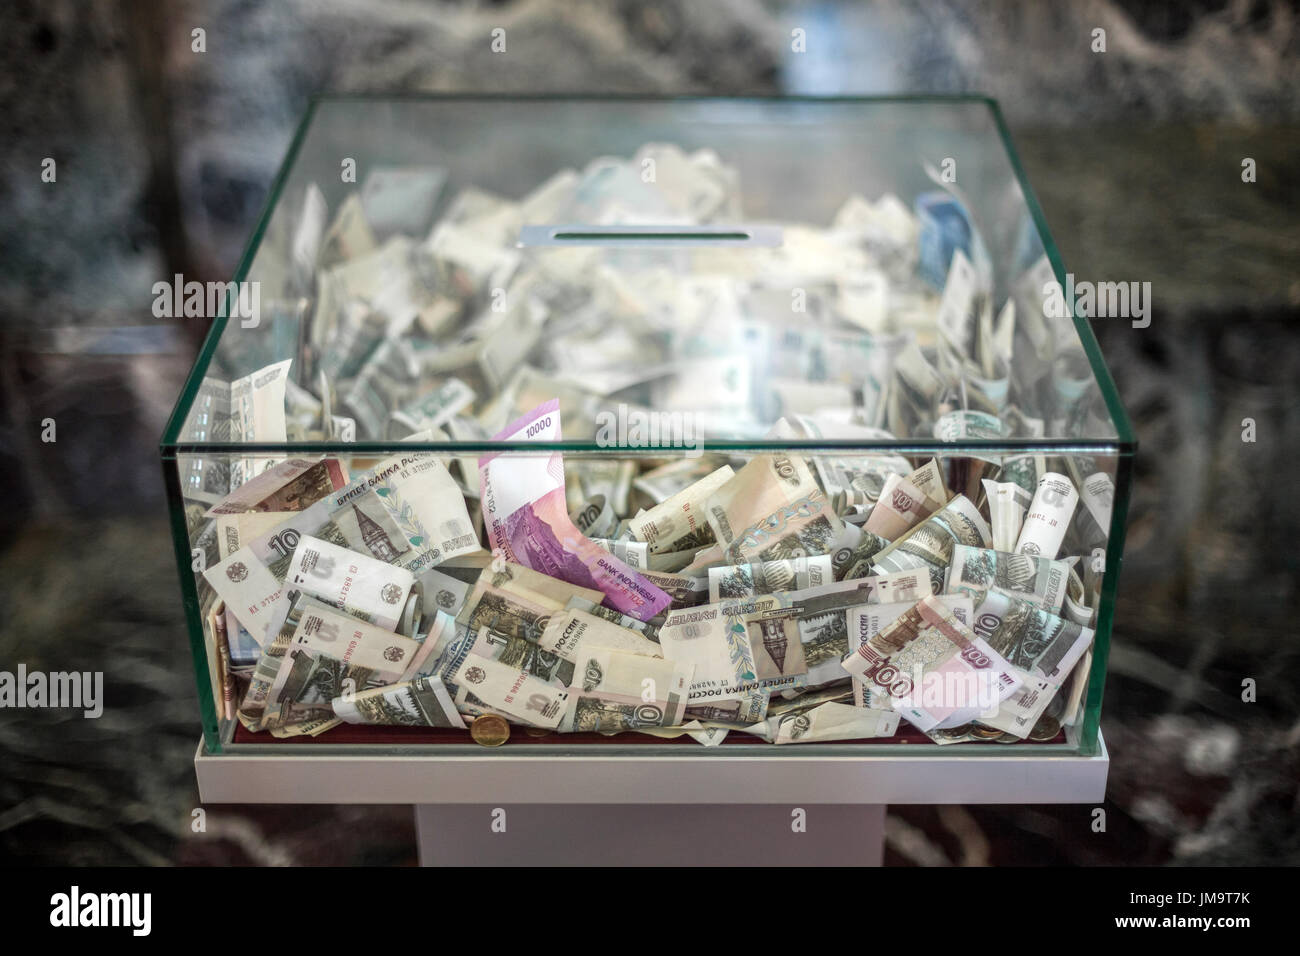 Rubles in a church donation box. Moscow, Russian Federation. - Stock Image